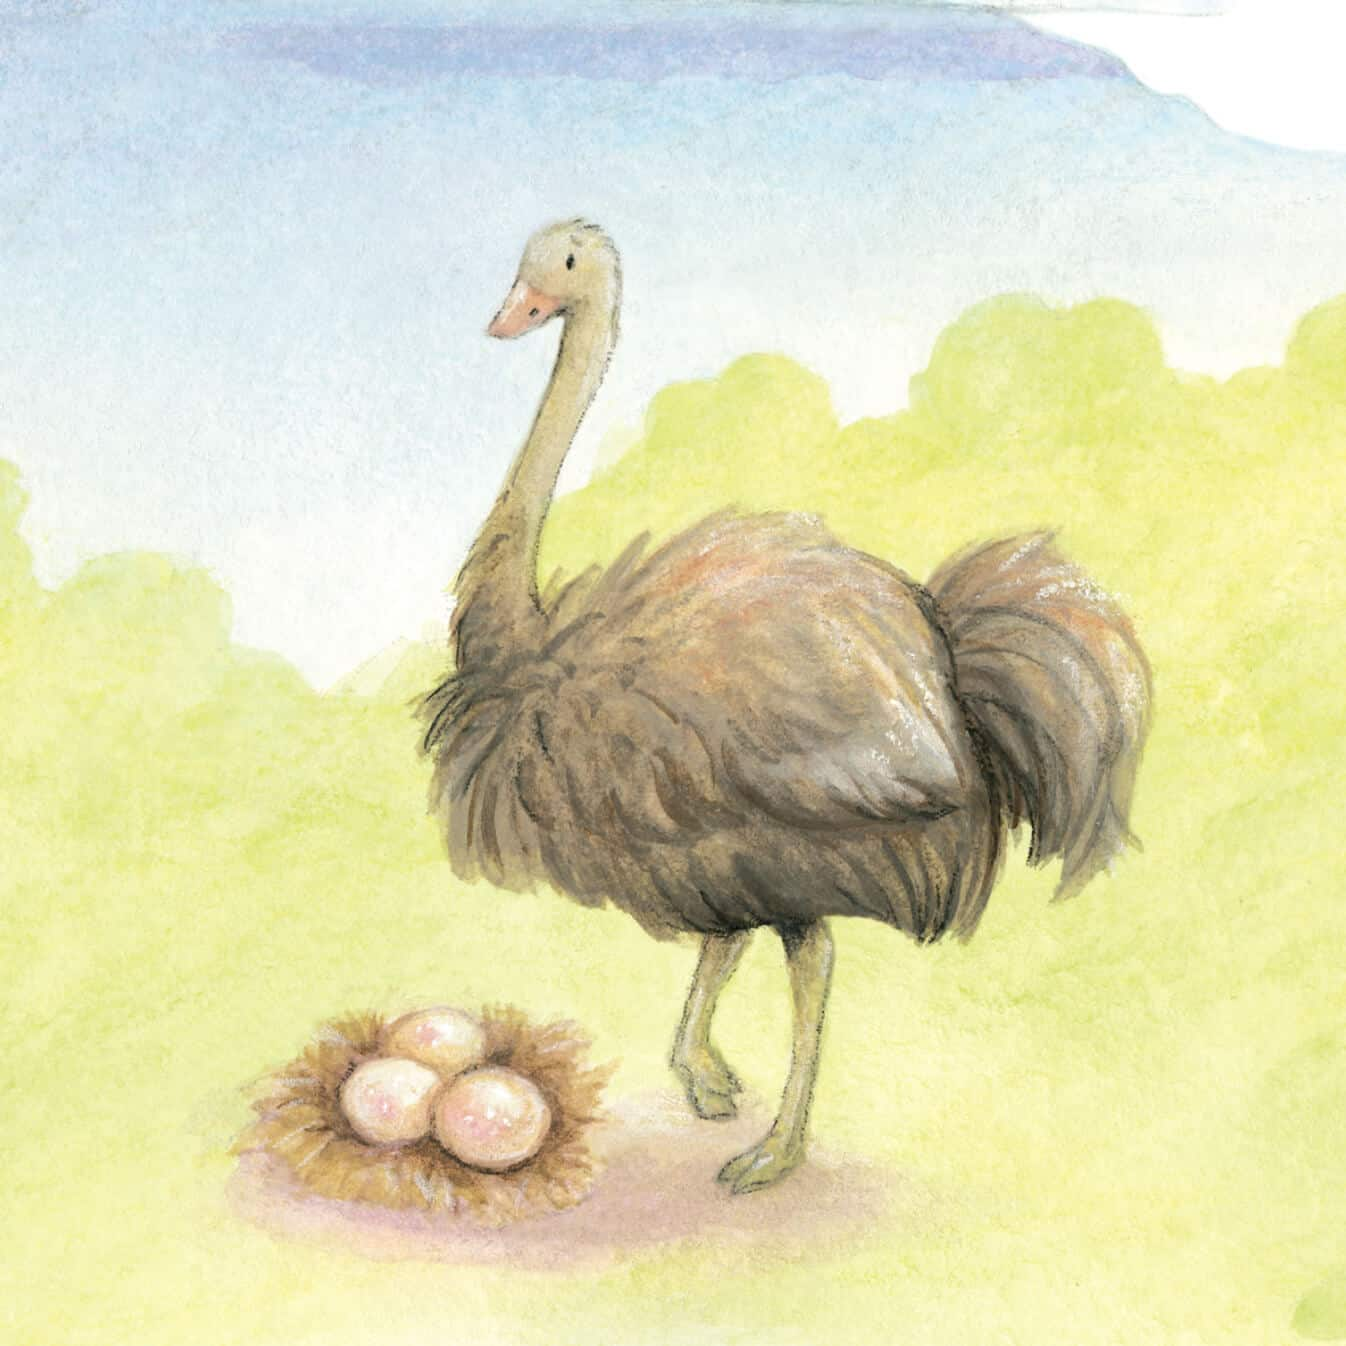 olivia the ostrich illlustrated character from guion the lion